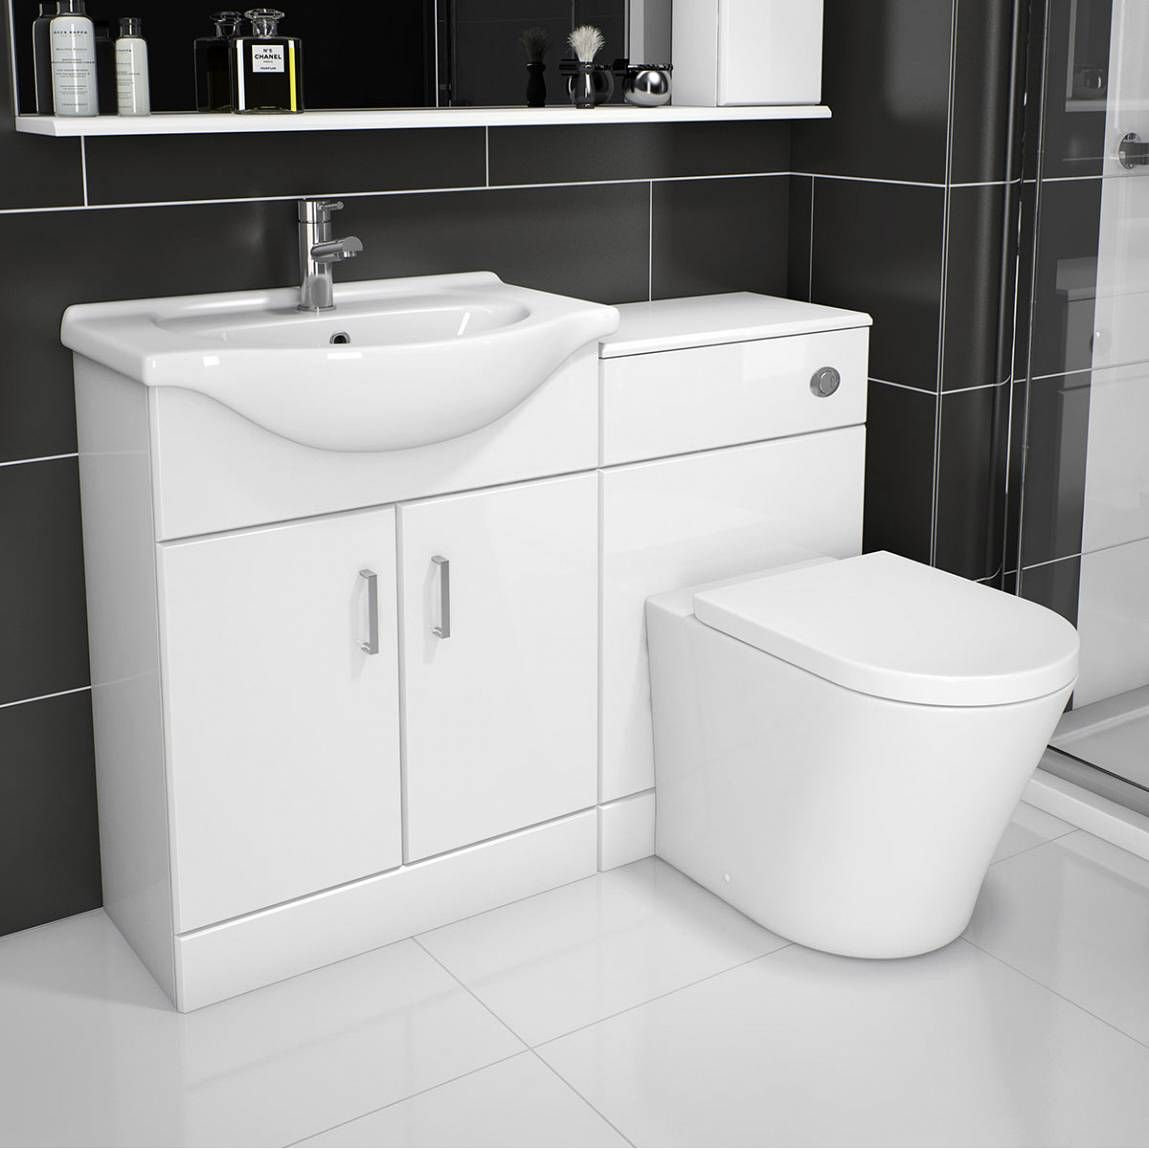 Bathroom Accessories Victoria Plumb sienna arc white gloss combination vanity unit small - victoria